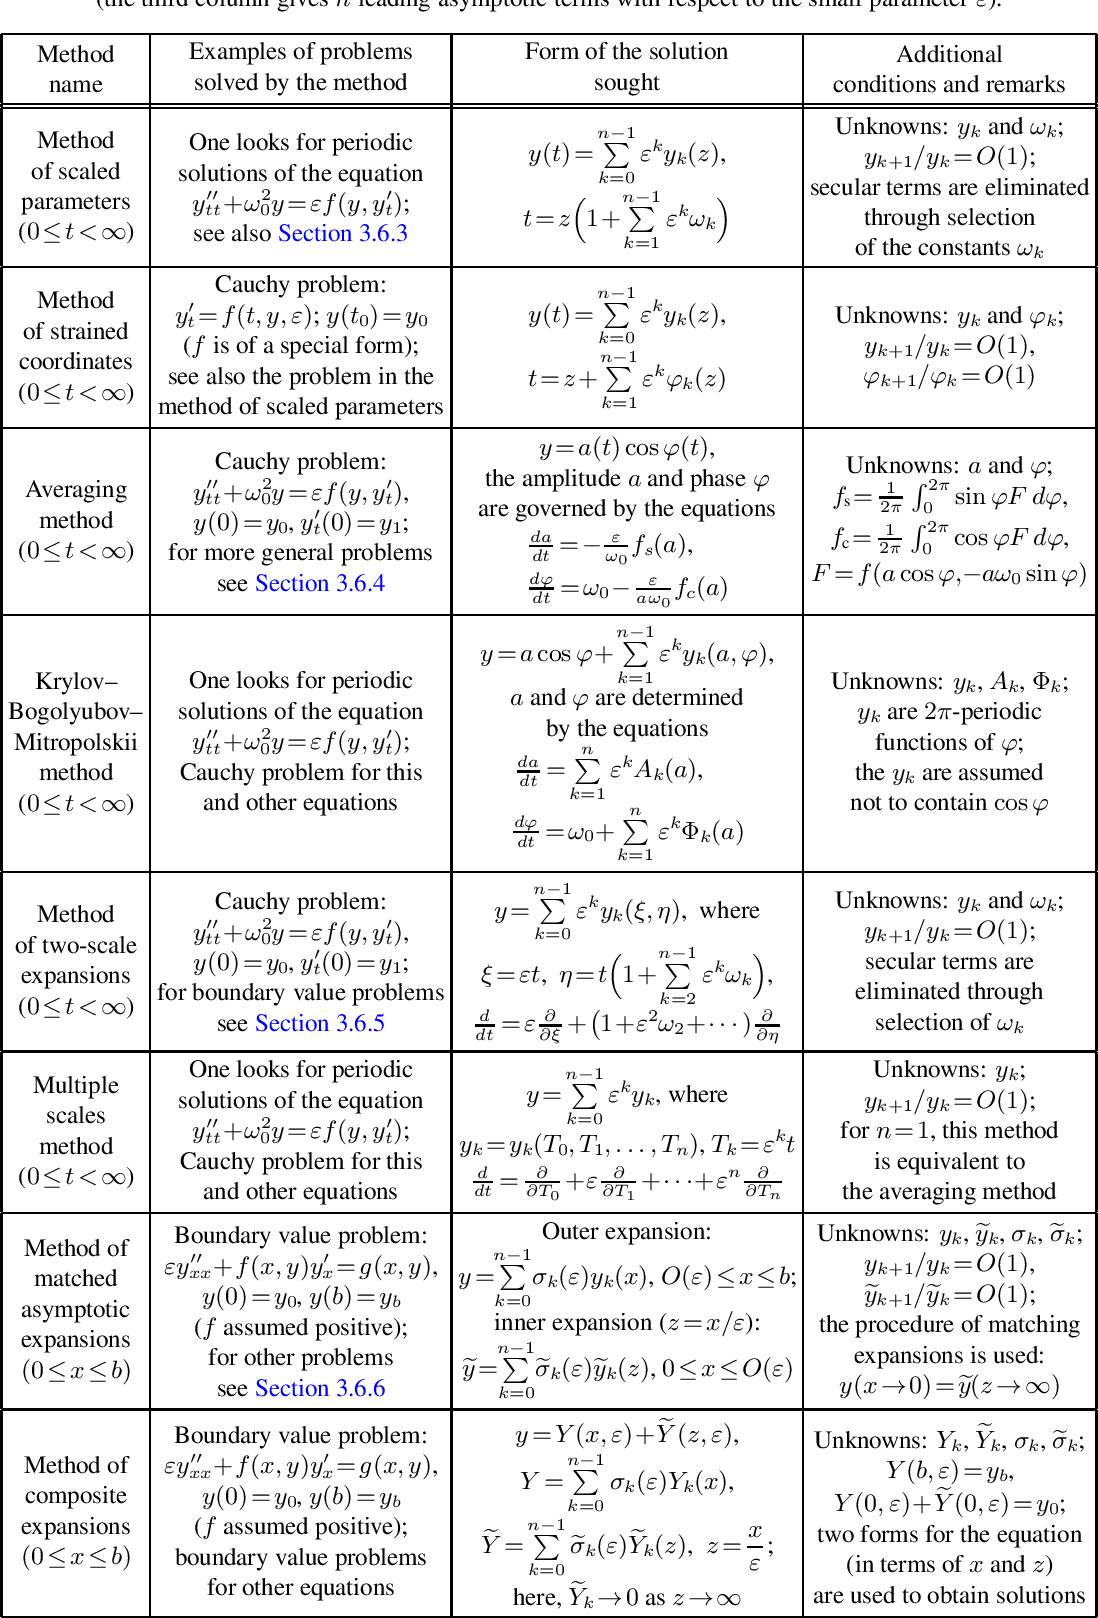 Handbook of Ordinary Differential Equations: Exact Solutions